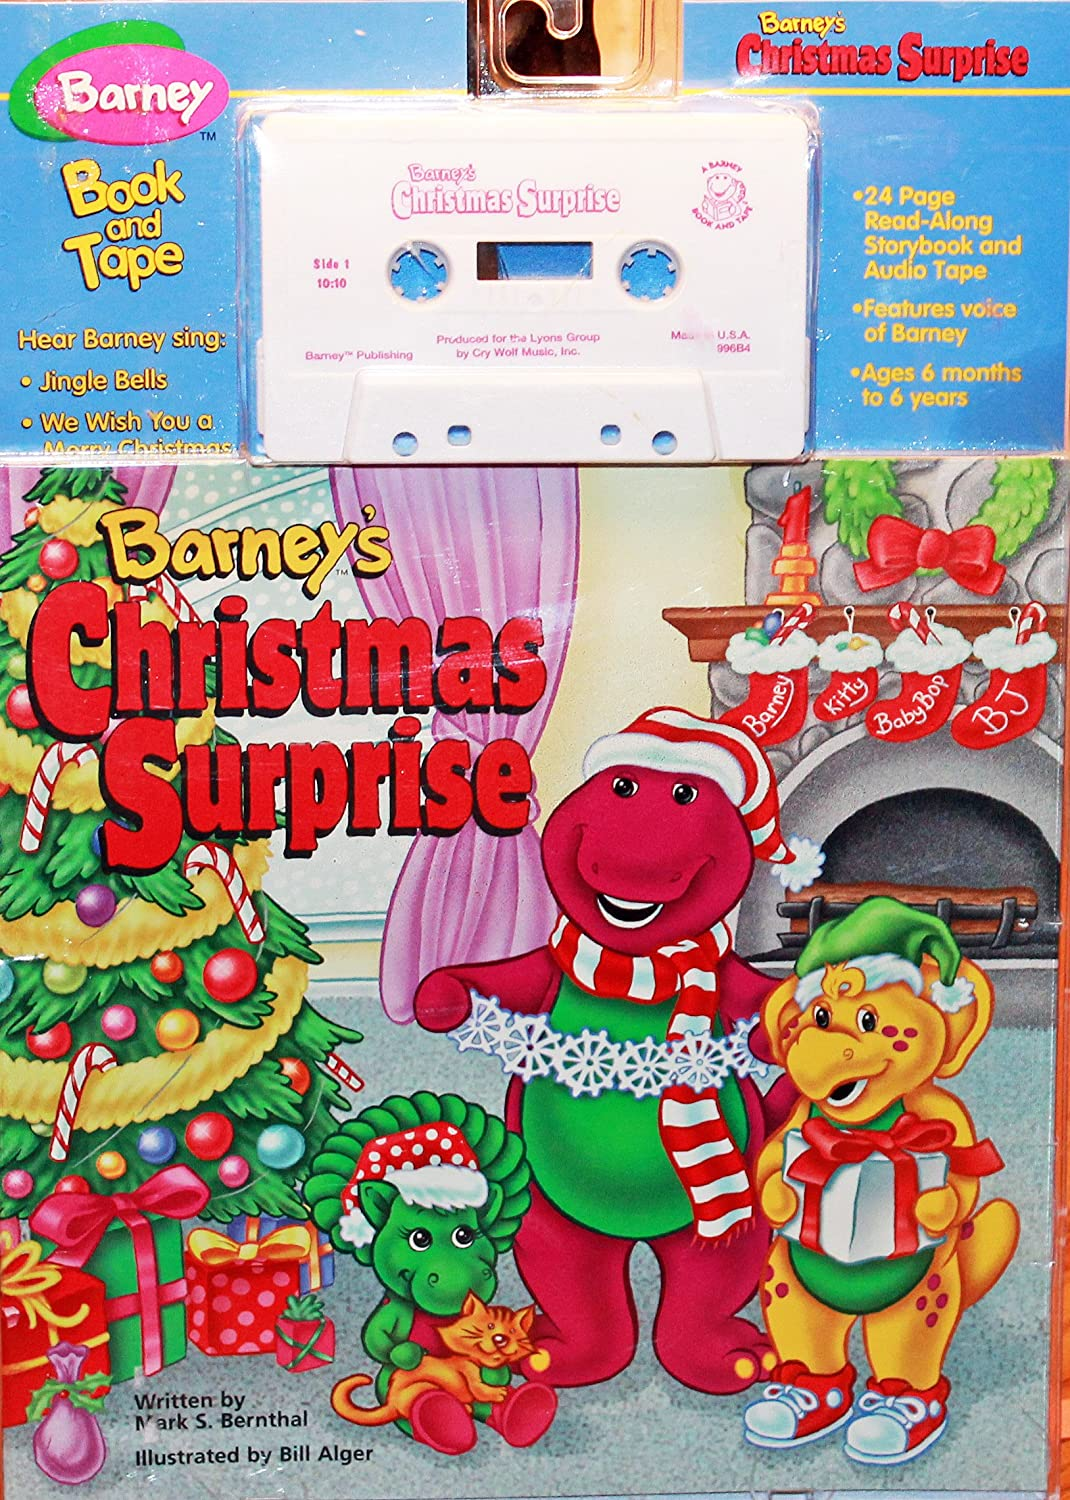 Read-Along - Barney\'s Christmas Surprise - Amazon.com Music